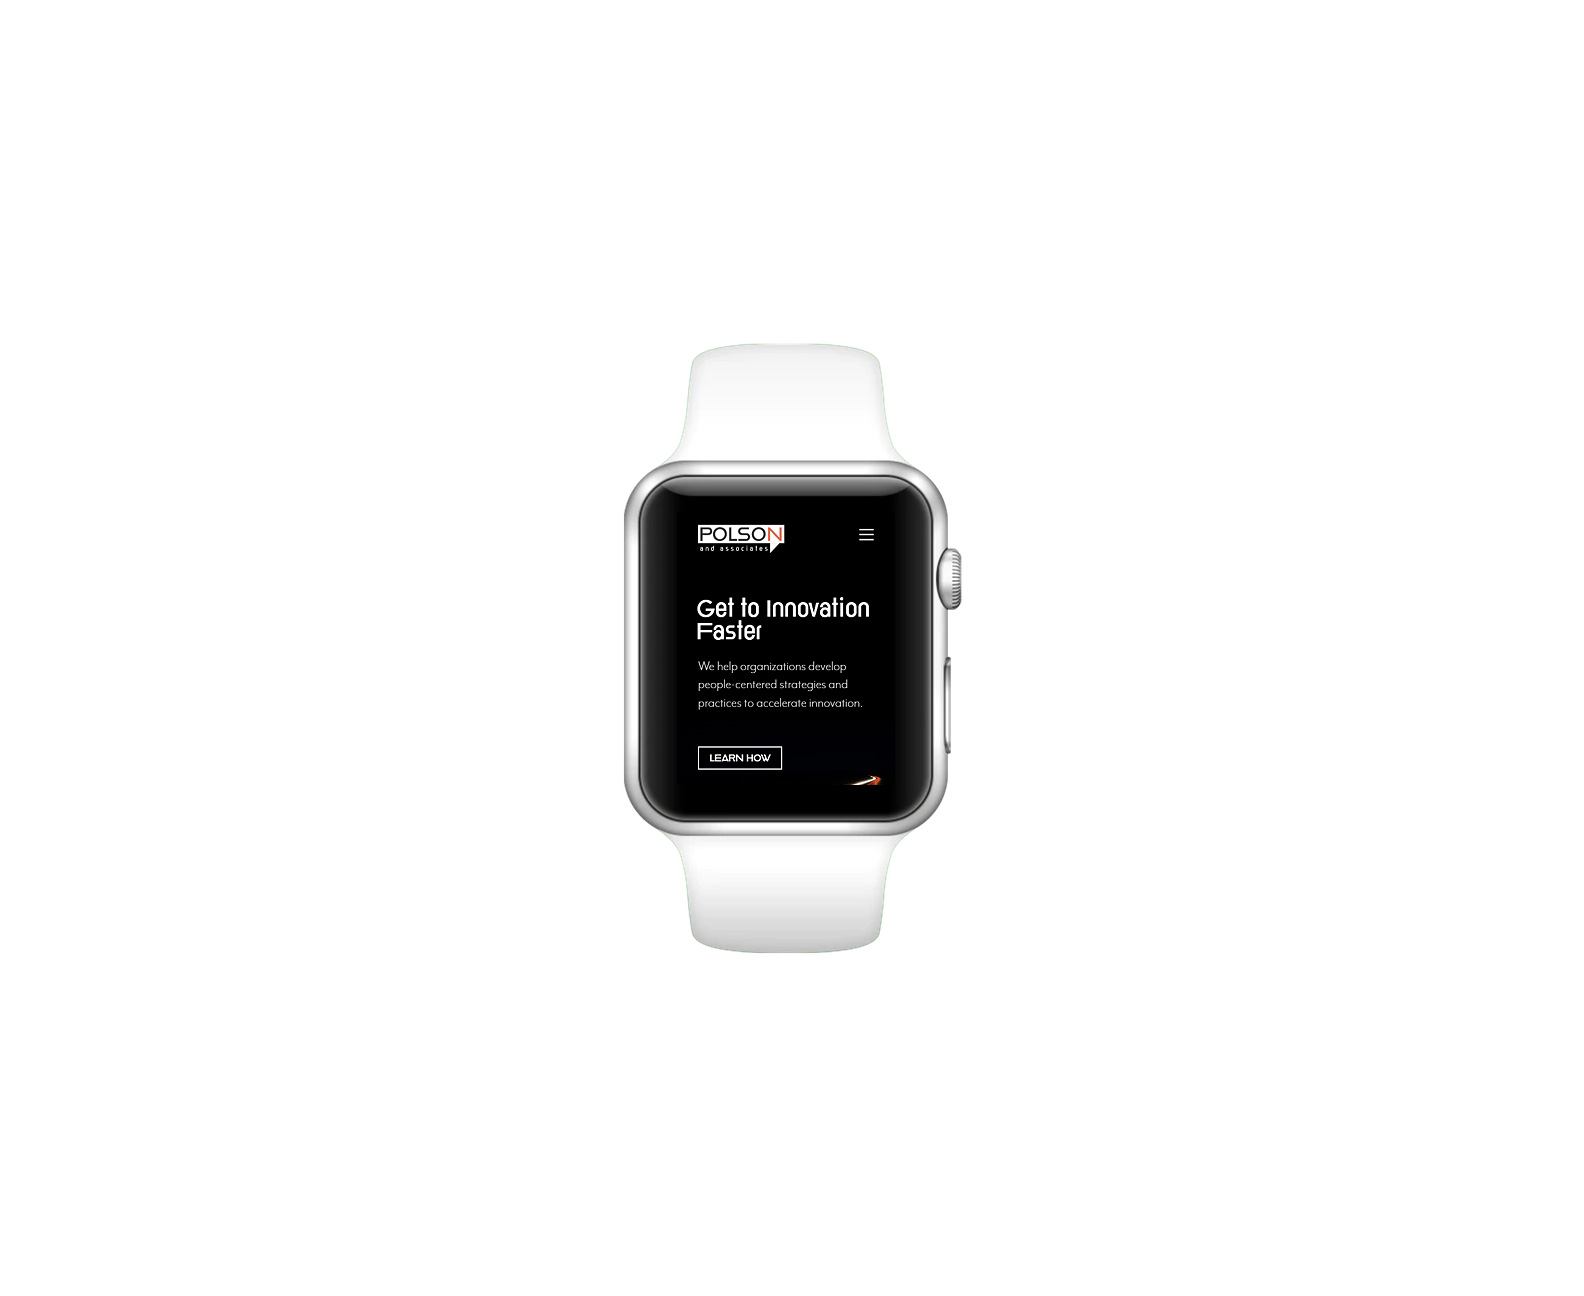 Polson & Associates - Apple Watch Mock-Up